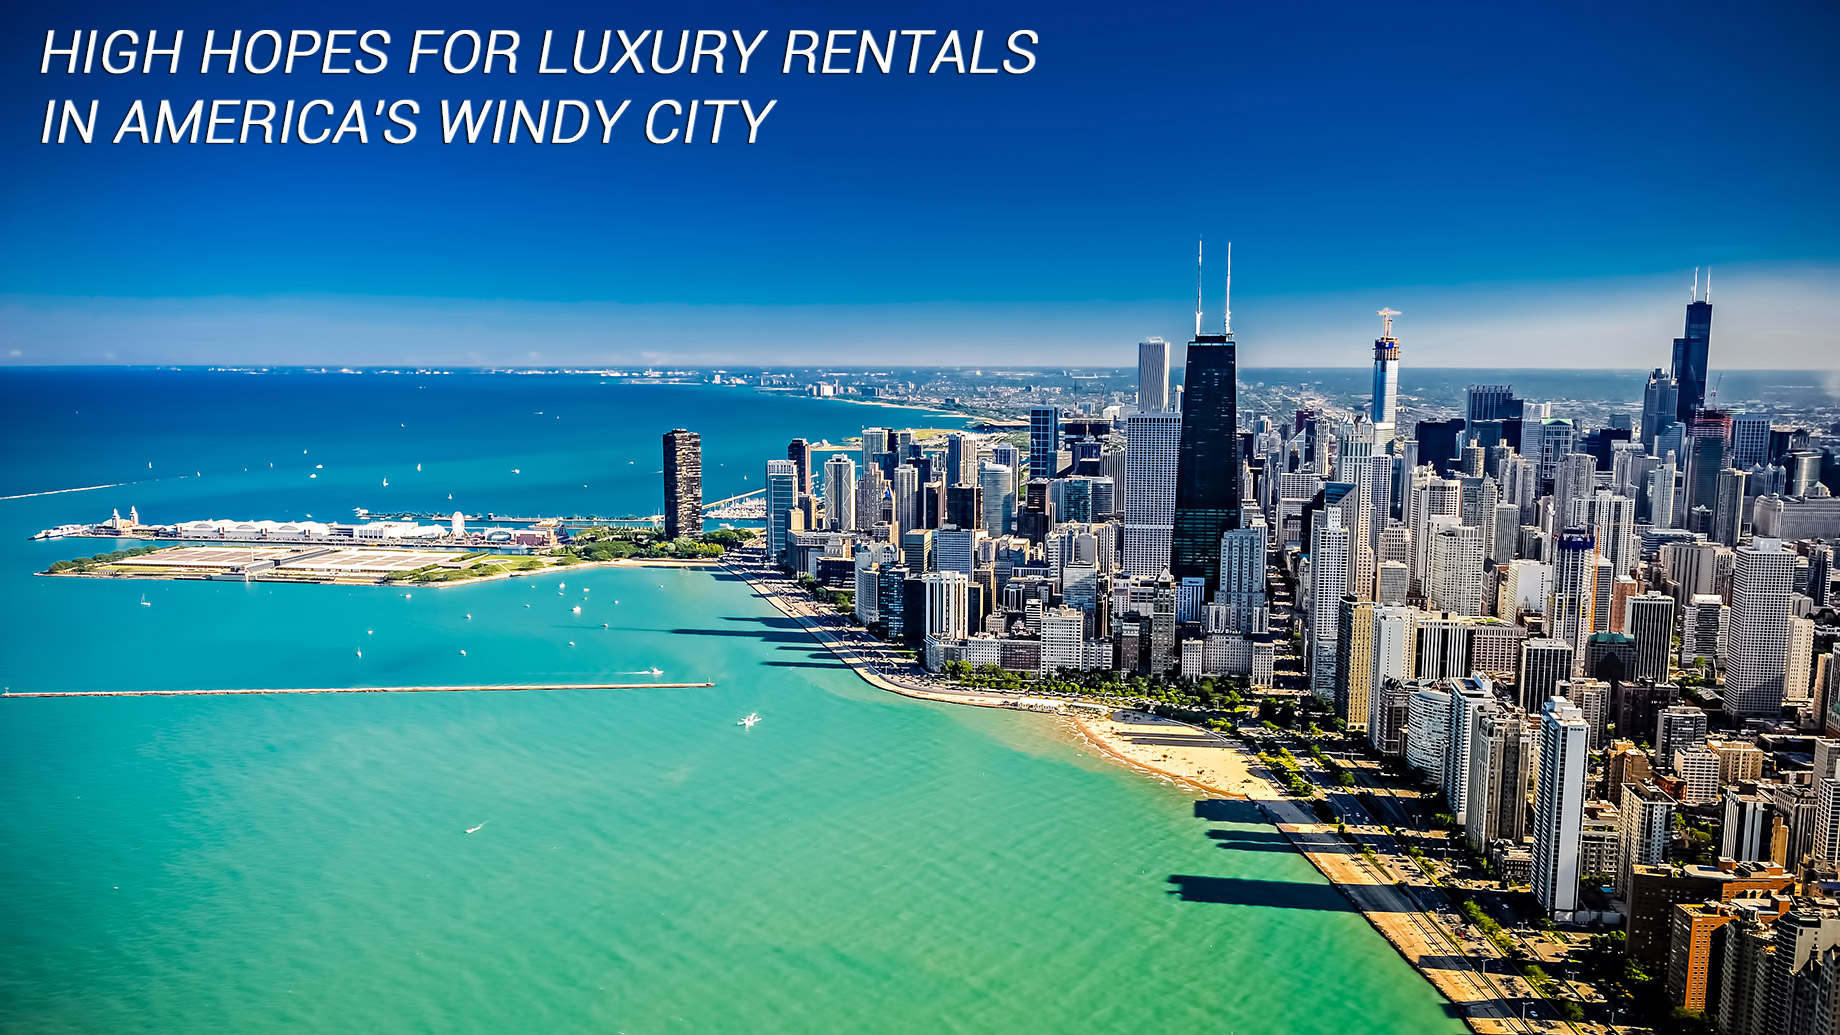 High Hopes for Luxury Rentals in America's Windy City as Chicago Expects 3,600 New Rental Units